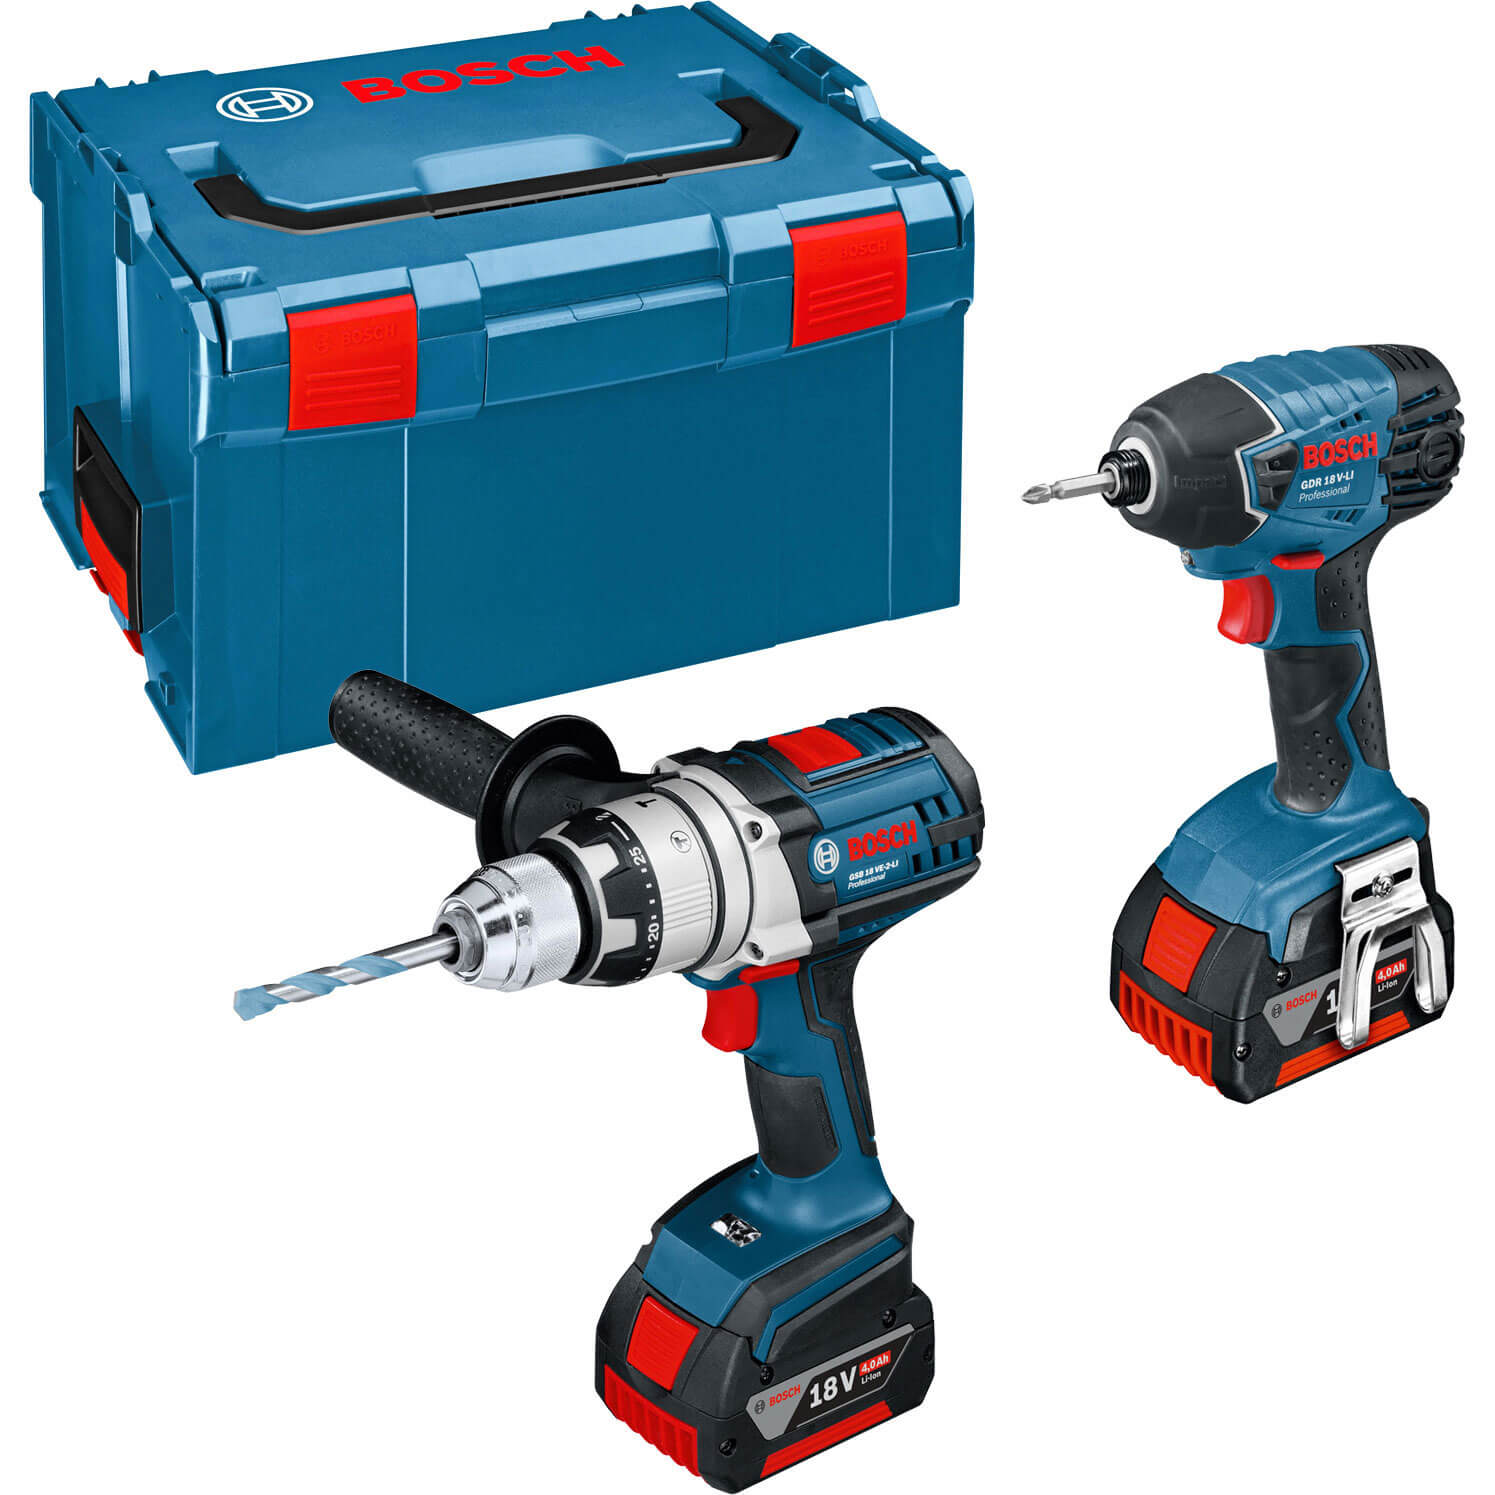 Bosch GSB 18 VE-2 LI 18v Cordless Robustseries Combi Drill & GDR 18 V-LI Impact Driver with L Boxx & 2 Lithium Ion Batteries 4ah